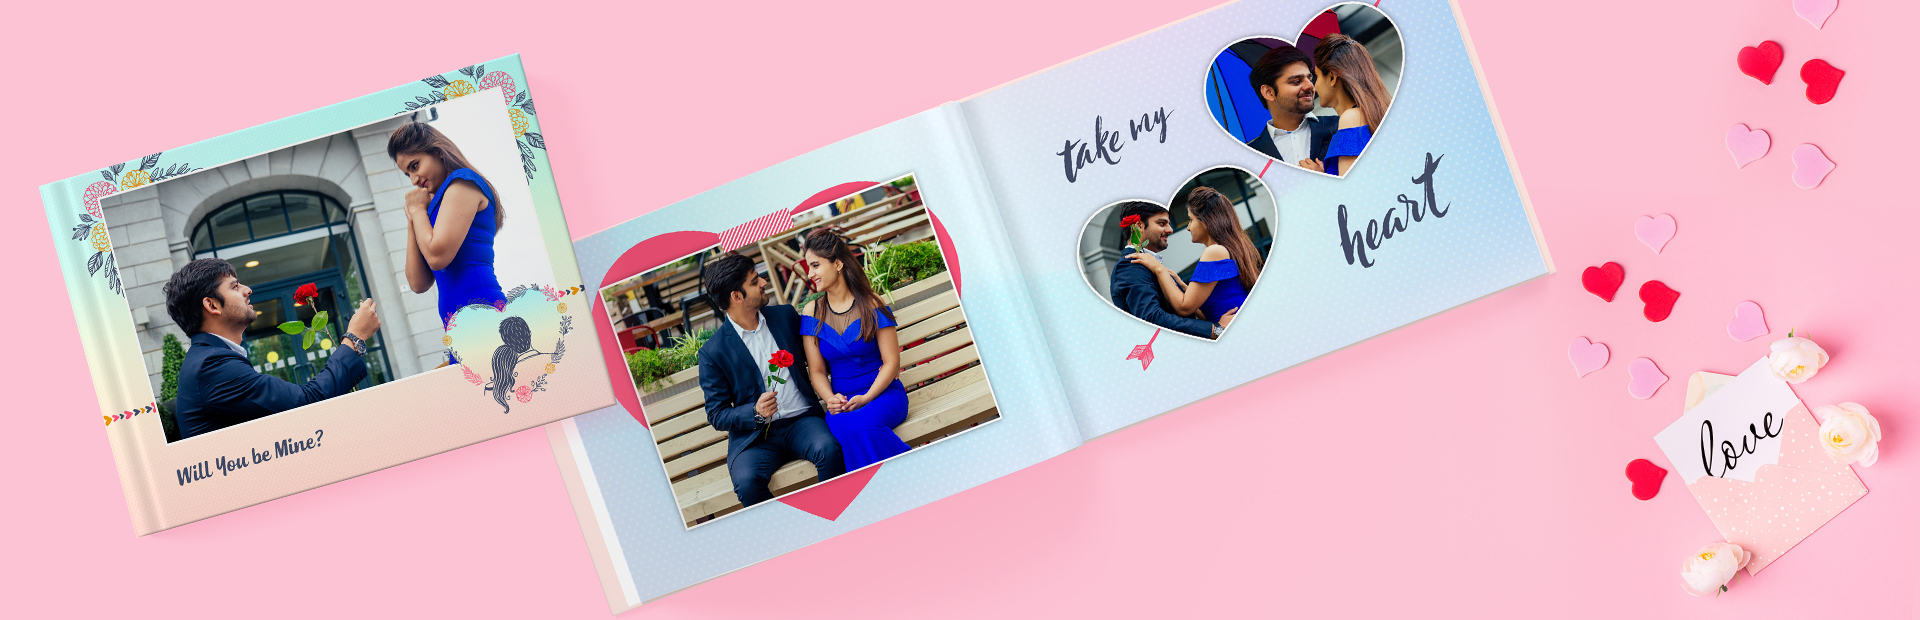 Love Proposal Photo Books